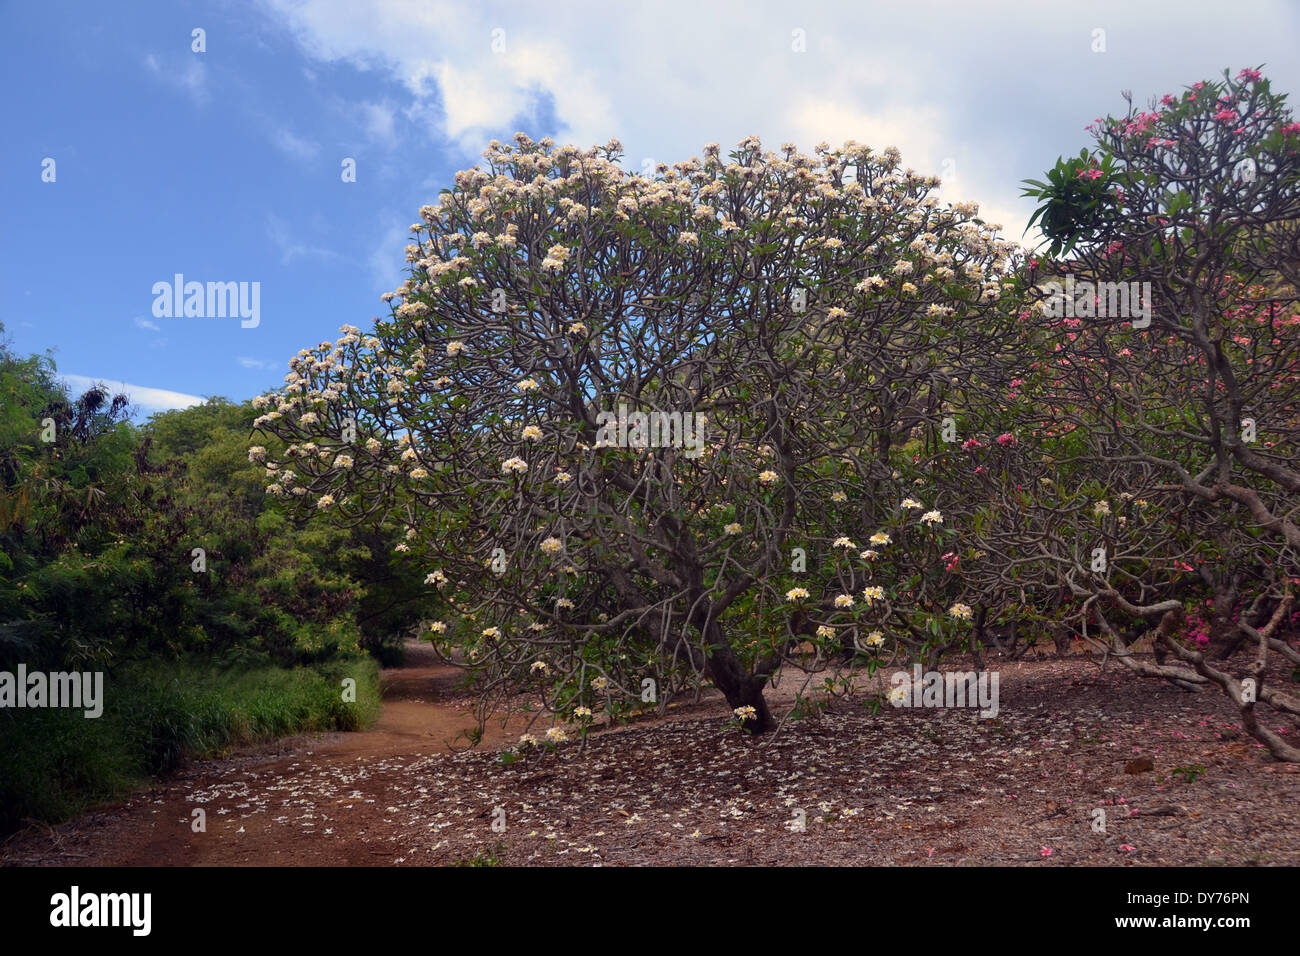 Plumeria Tree, Plumeria Sp., Plumeria Grove At Koko Crater Botanical Garden,  Oahu, Hawaii, USA